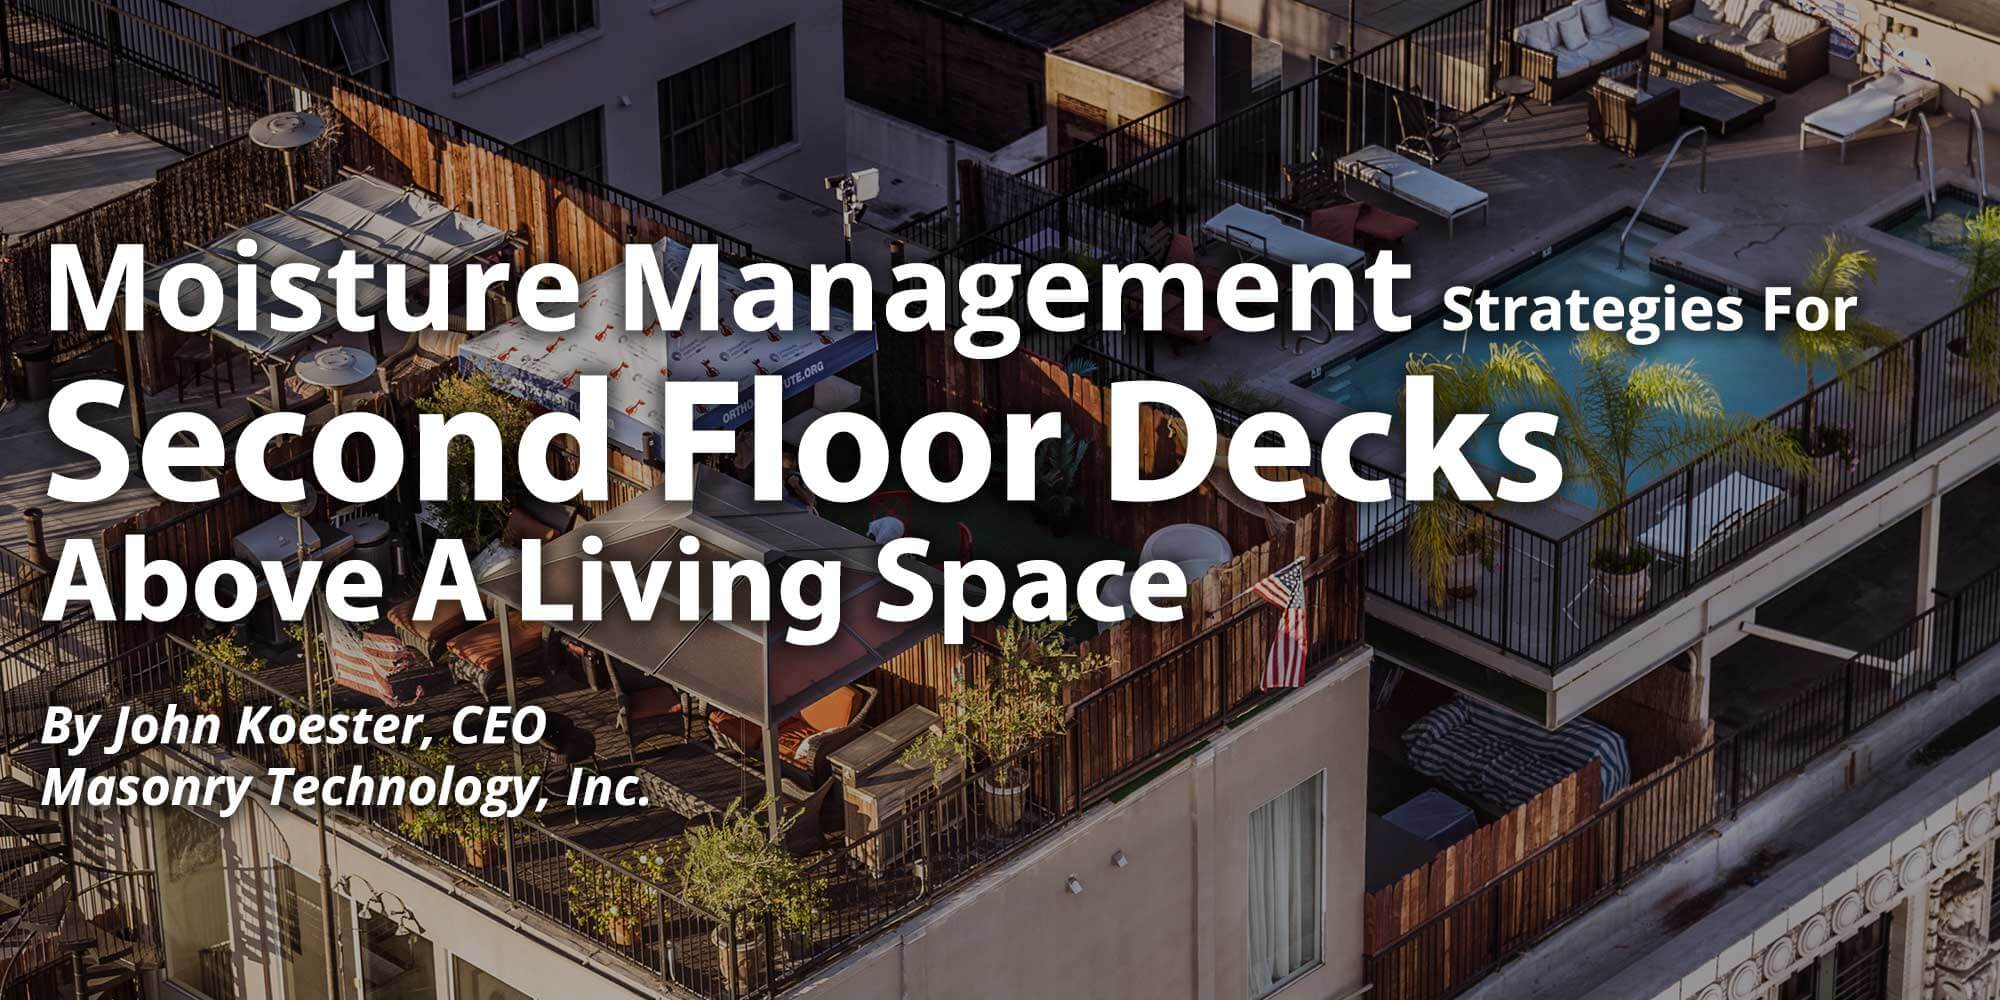 Moisture Management Strategies for a Second Floor Deck Above a Living Space